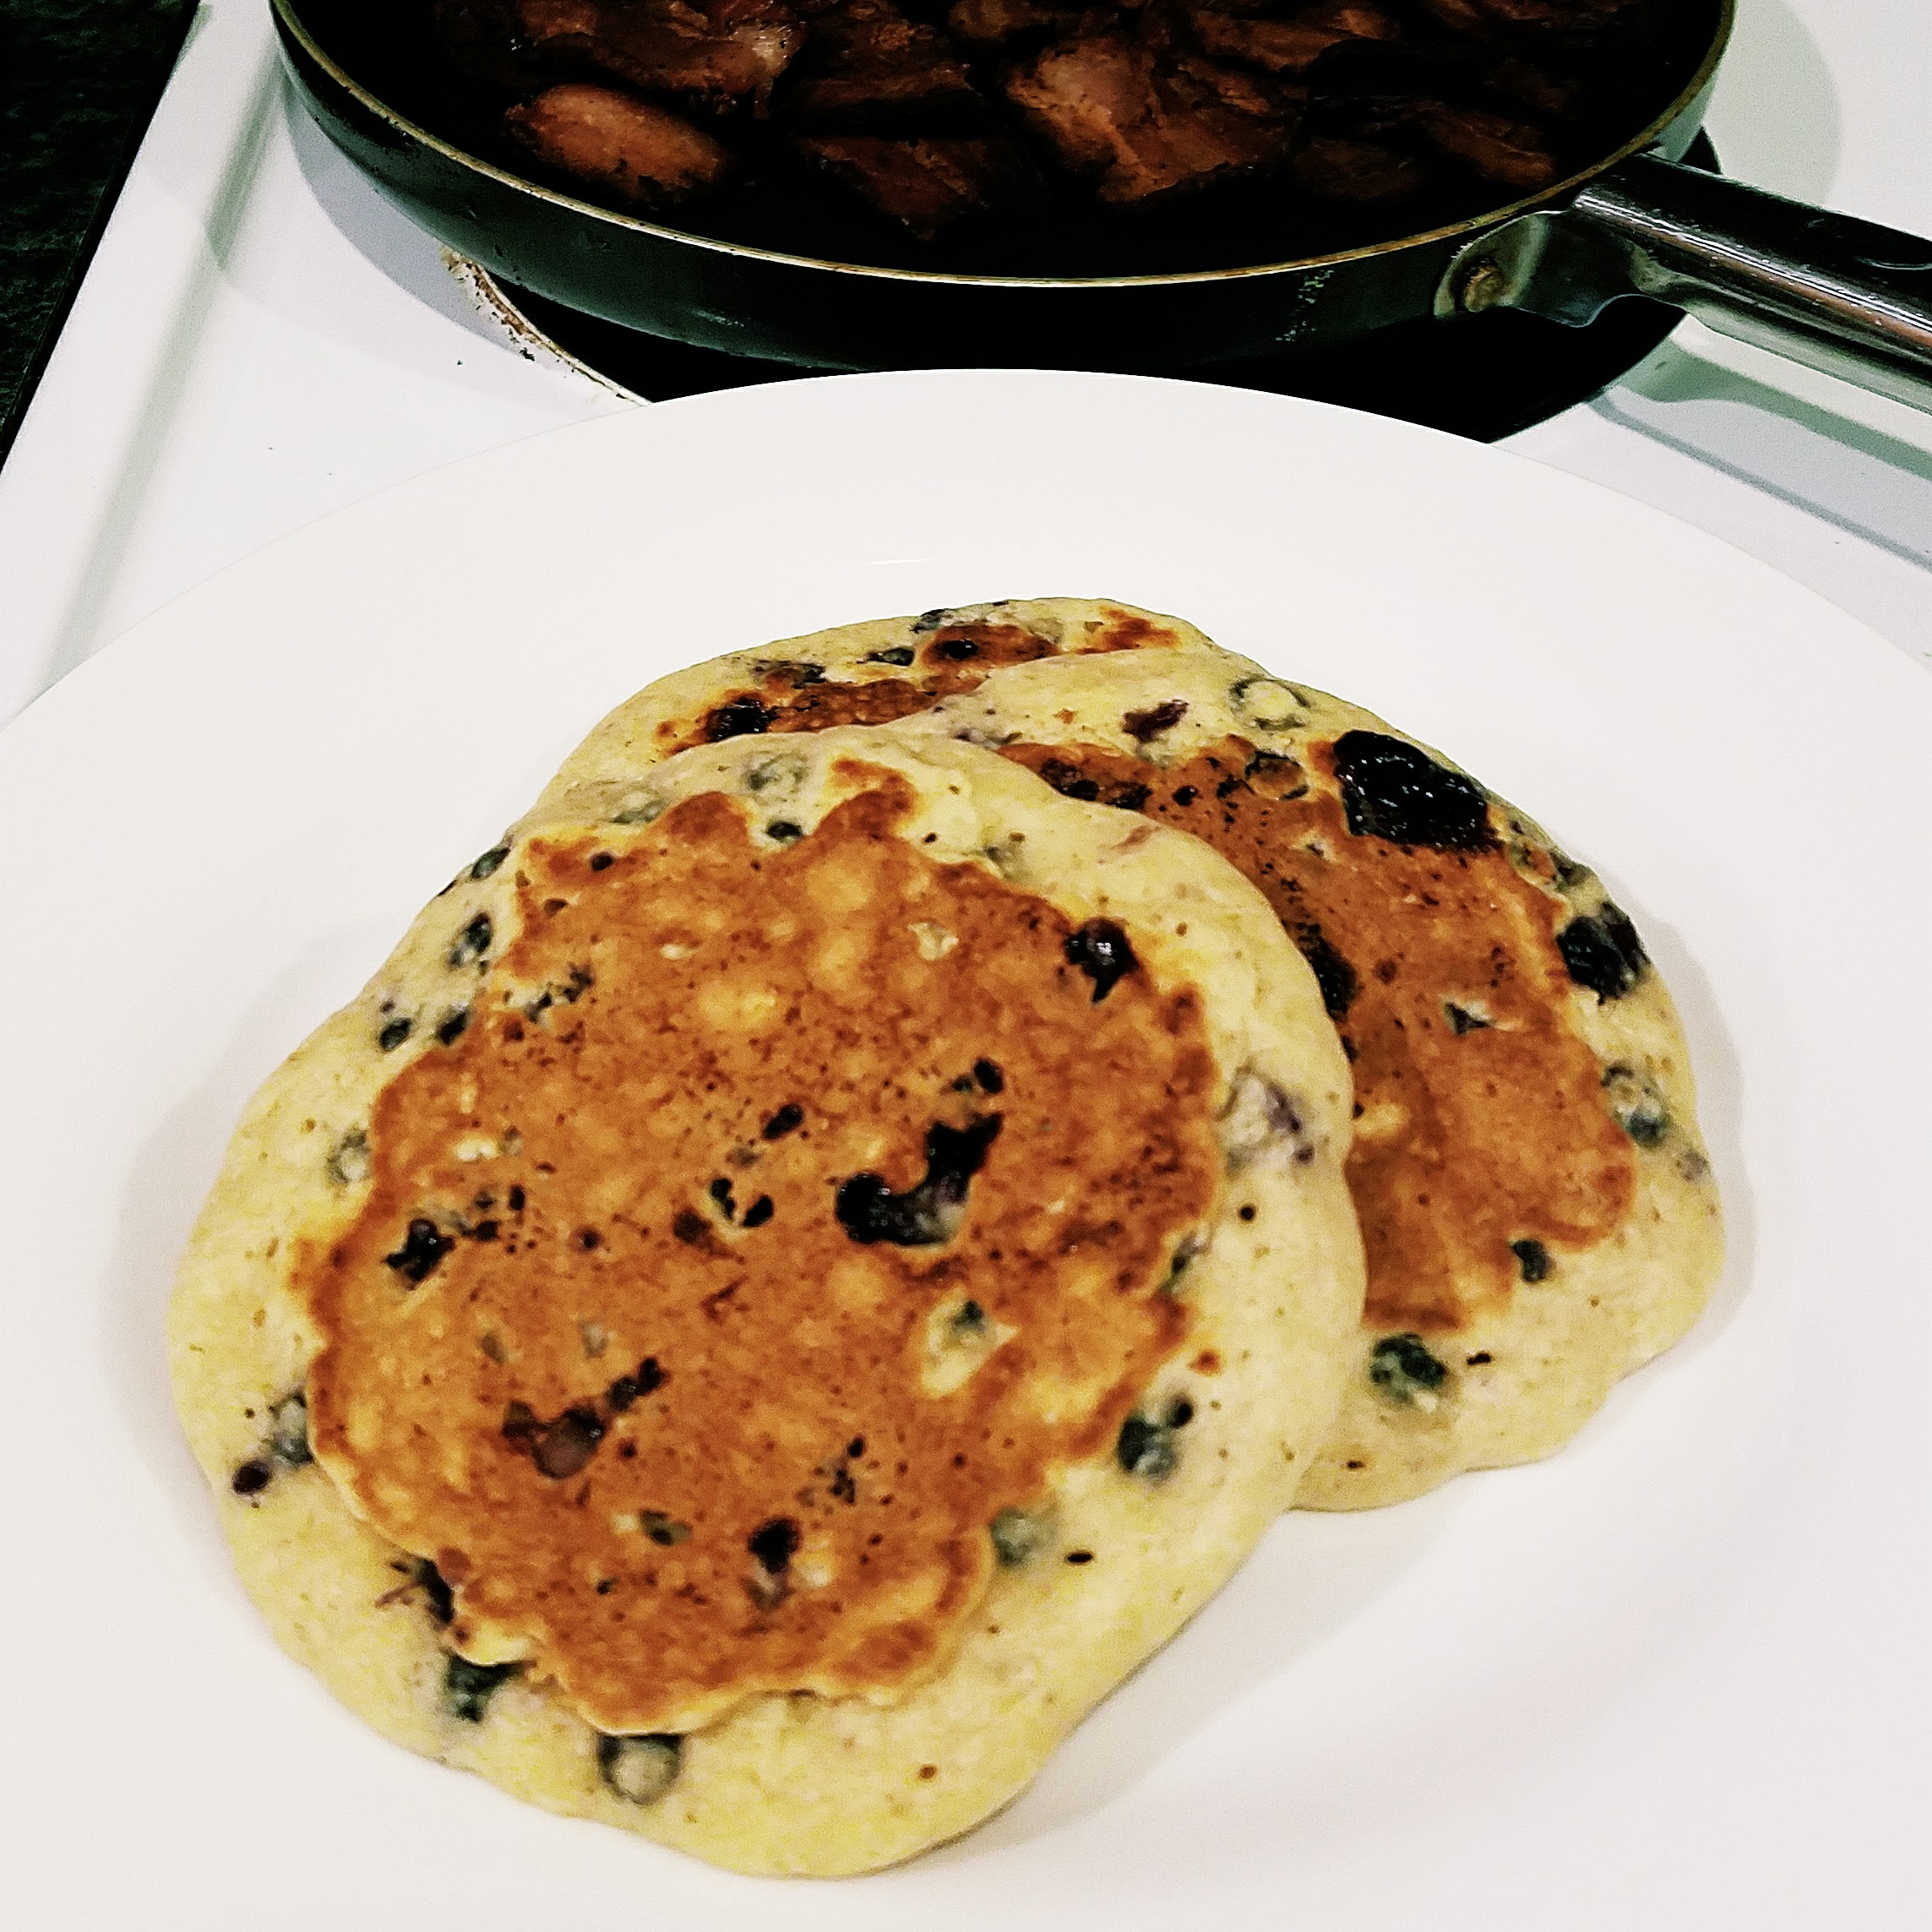 Also threw a handful of blueberries into Saturday morning pancakes. Probably my favorite way to eat blueberries!